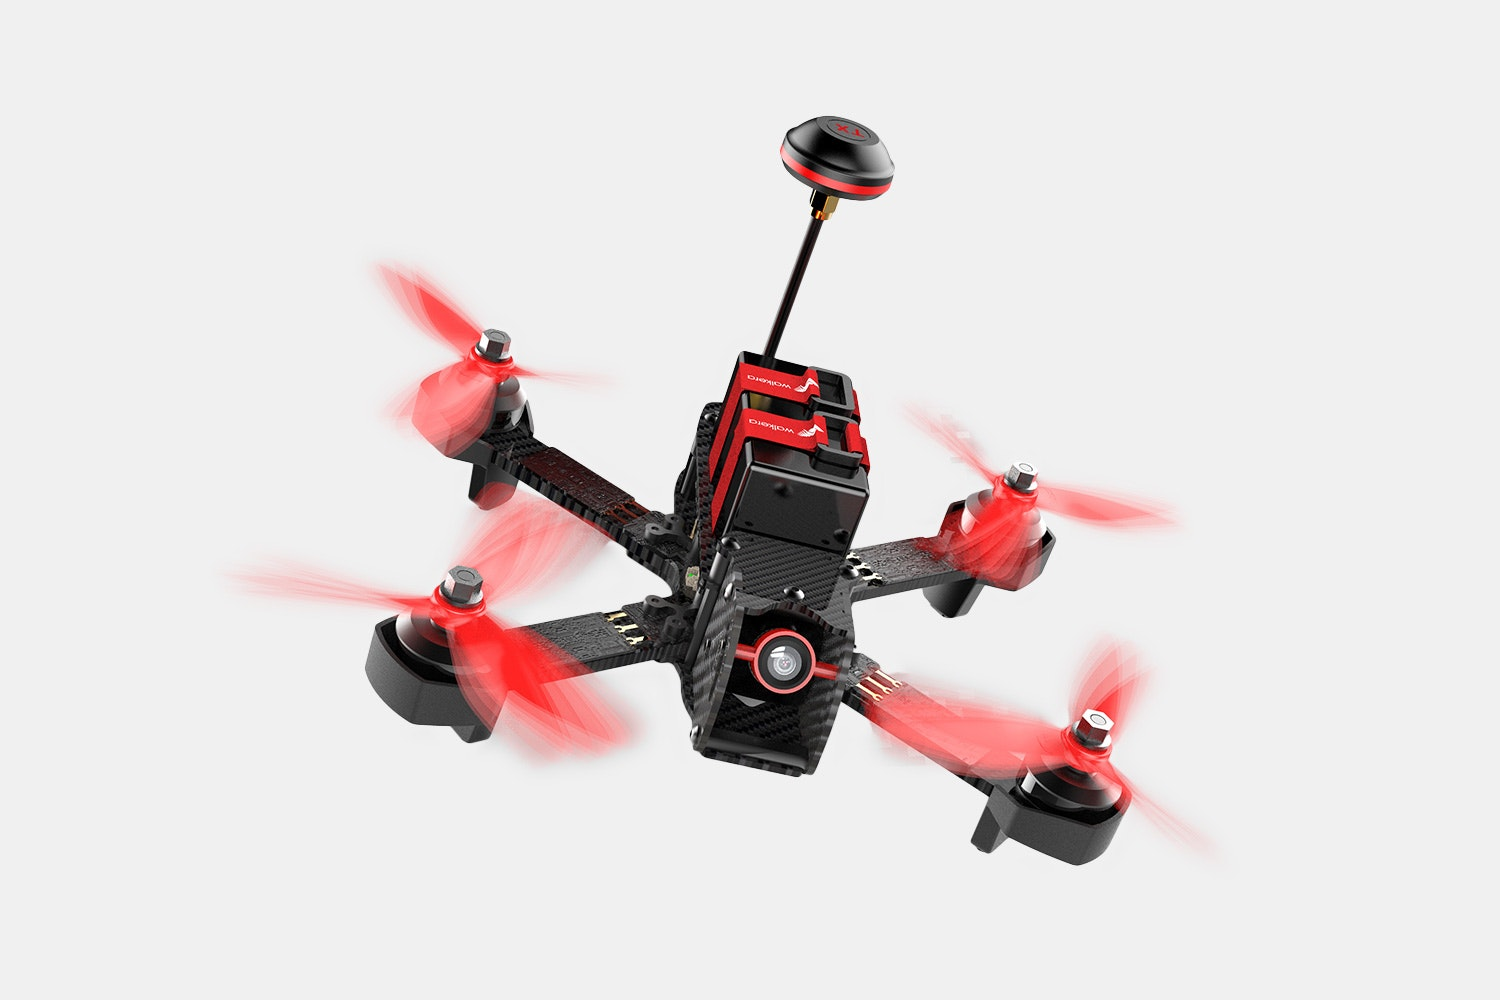 Walkera Furious 215 Mini FPV Racing Drone